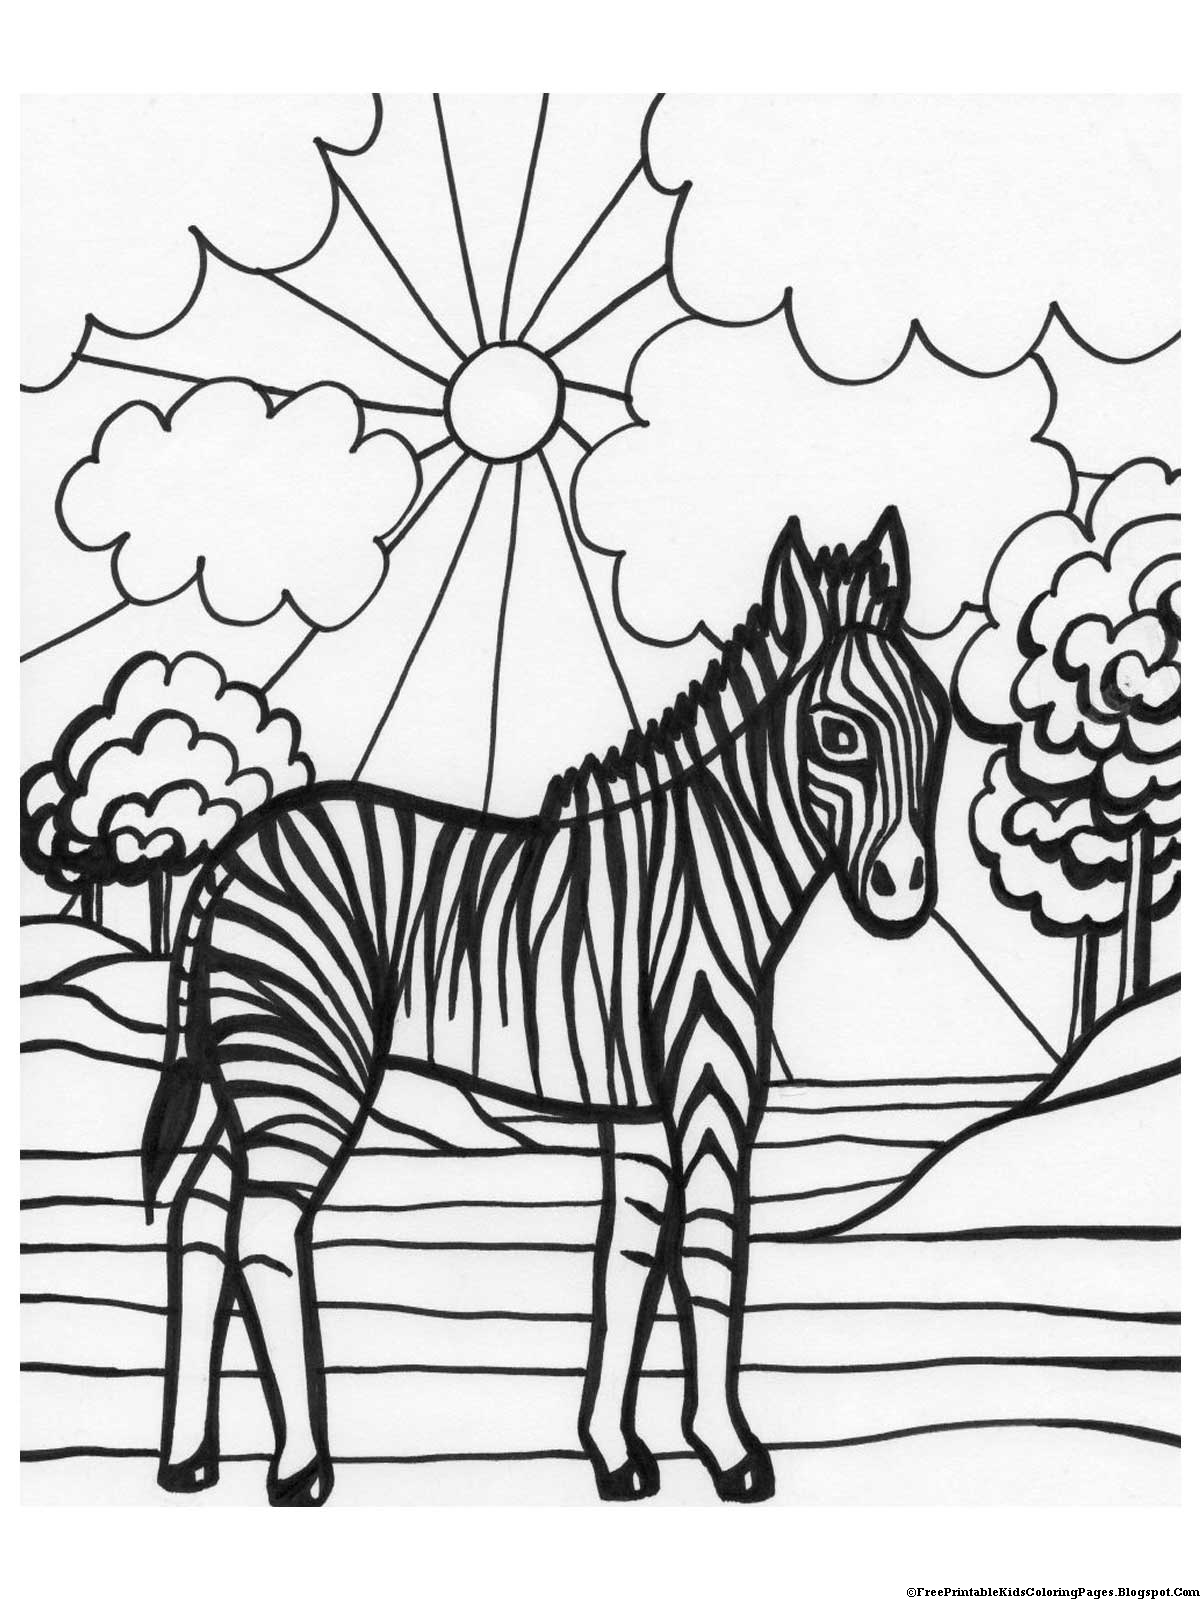 coloring pages free 9 free coloring pages for kids of all ages chicago parent coloring pages free